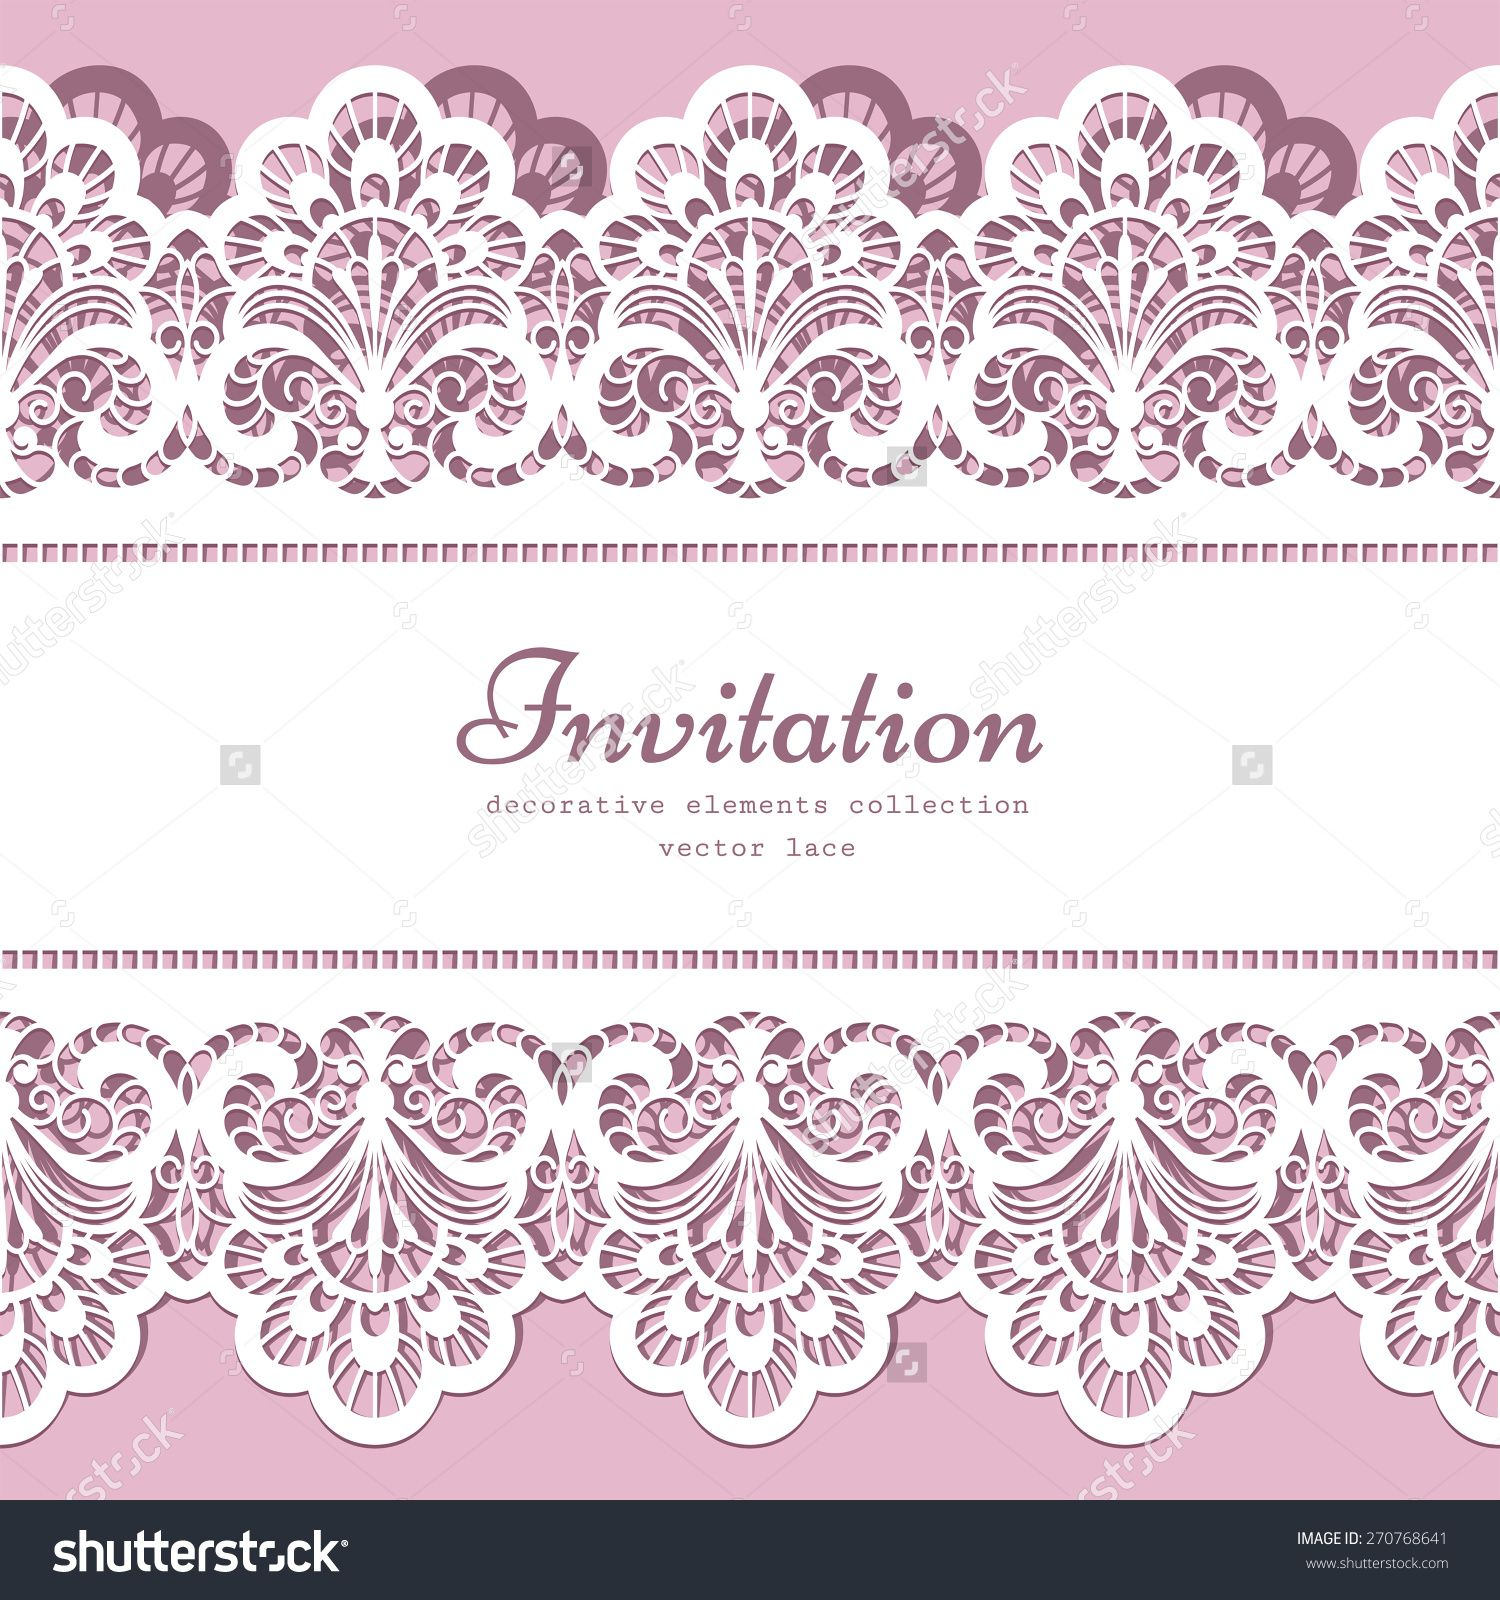 Vector Lace Background With Cutout Lacy Border Ornament Elegant